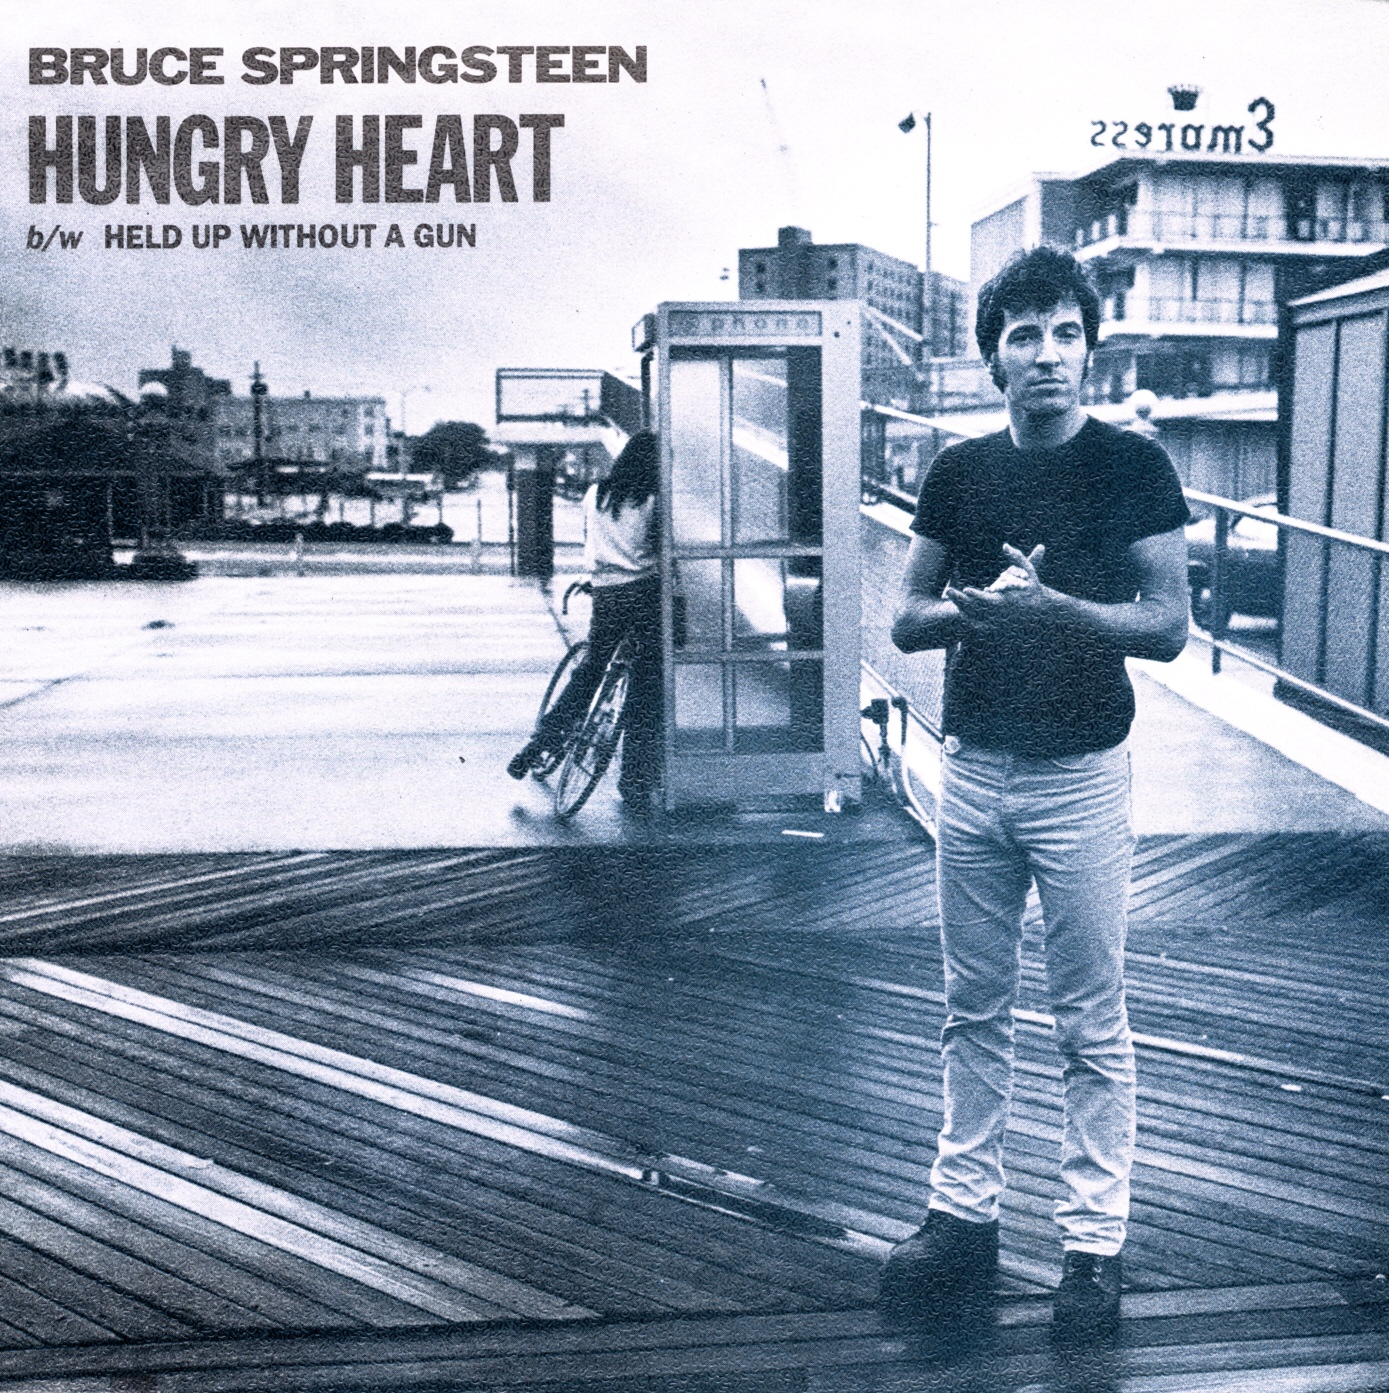 Cover: Hungry heart, Bruce Springsteen